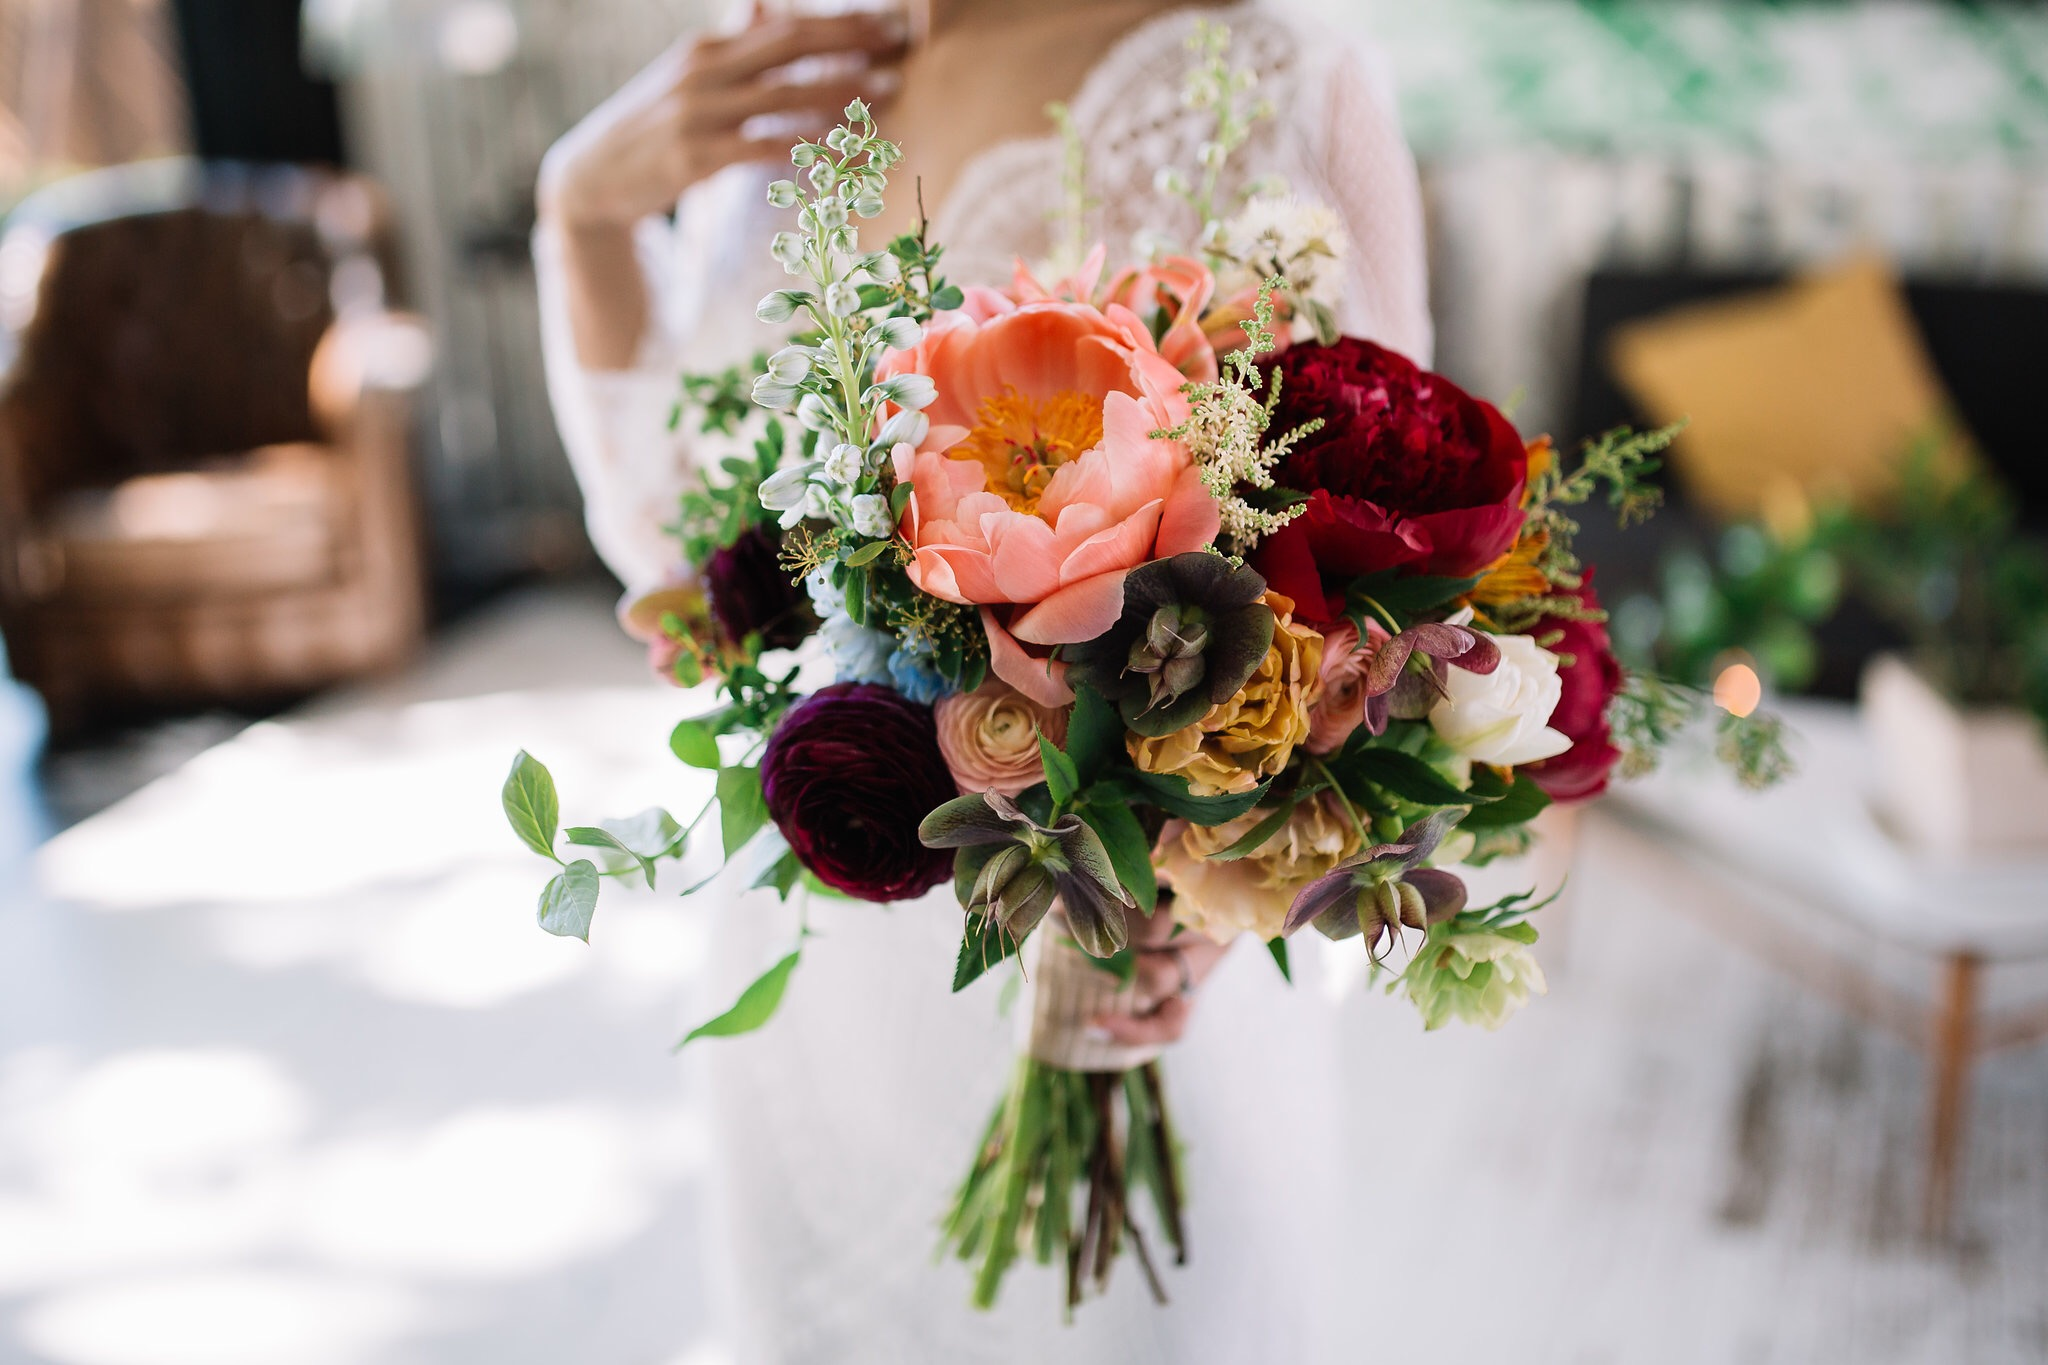 Colourful Bridal Bouquet in June